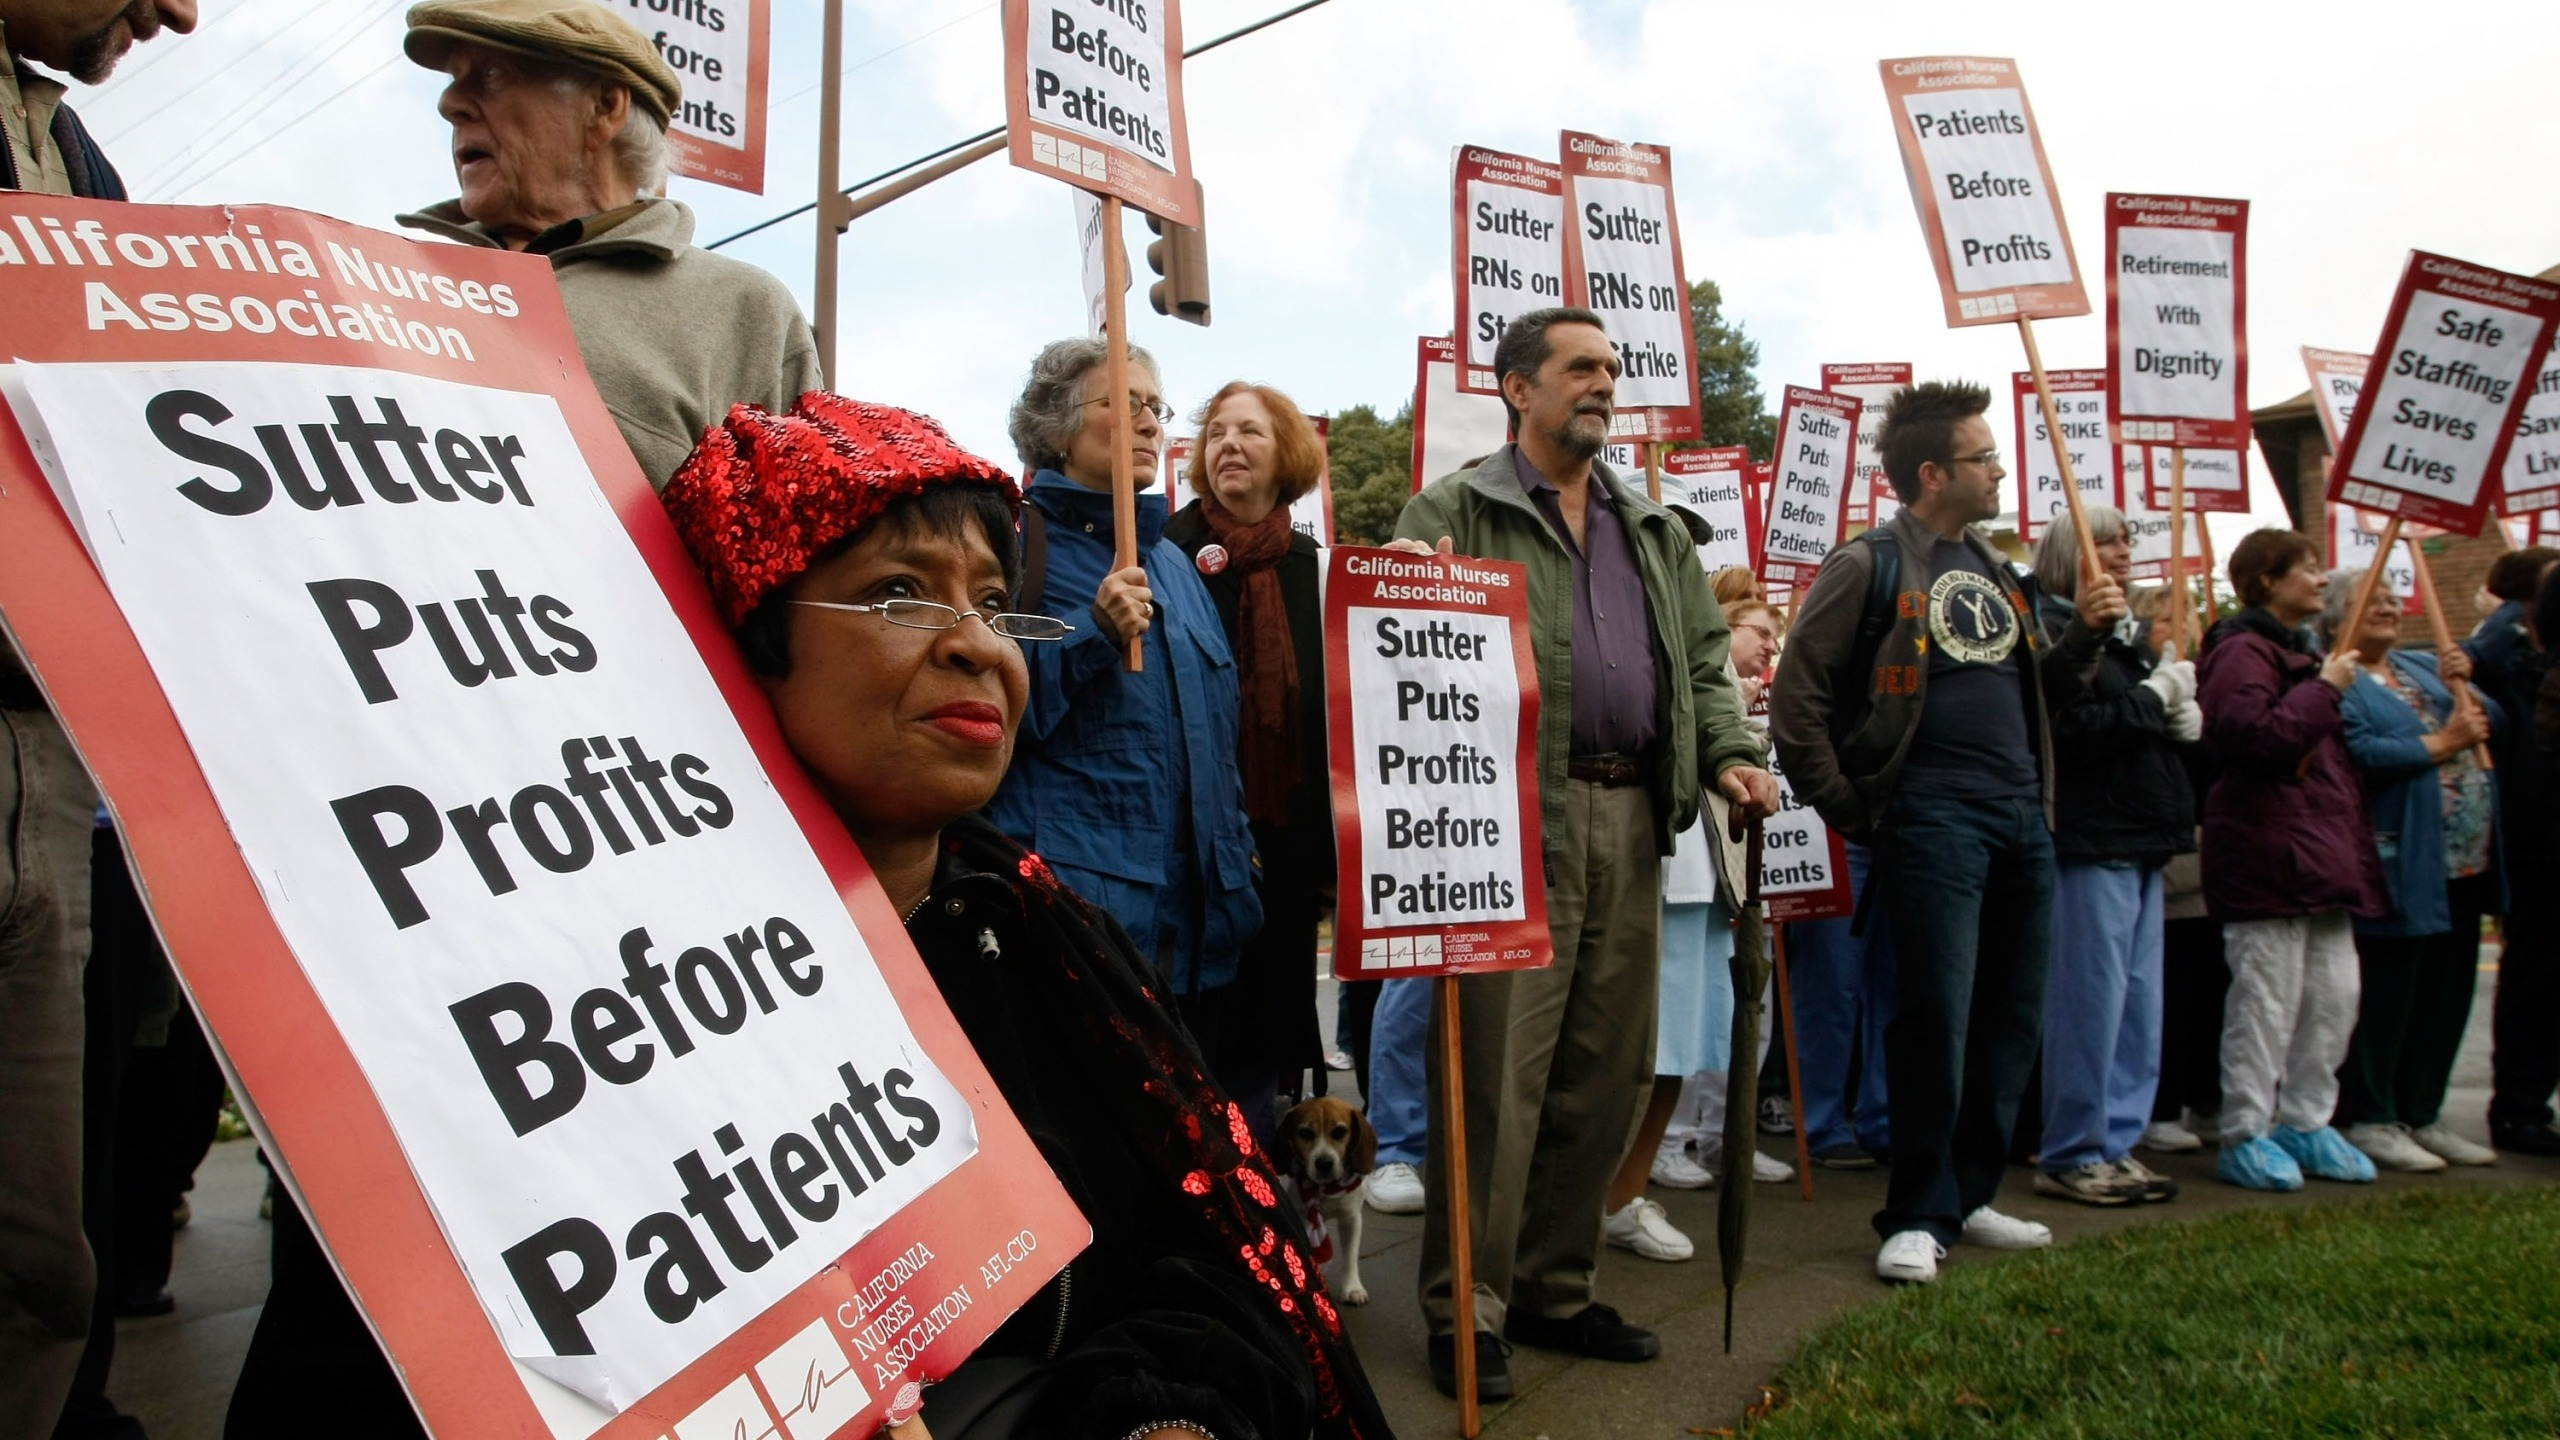 Nurses carry signs as they demonstrate against the Sutter Health network outside of Alta Bates Medical Center on Oct. 10, 2007, in Berkeley.(Credit: Justin Sullivan/Getty Images)